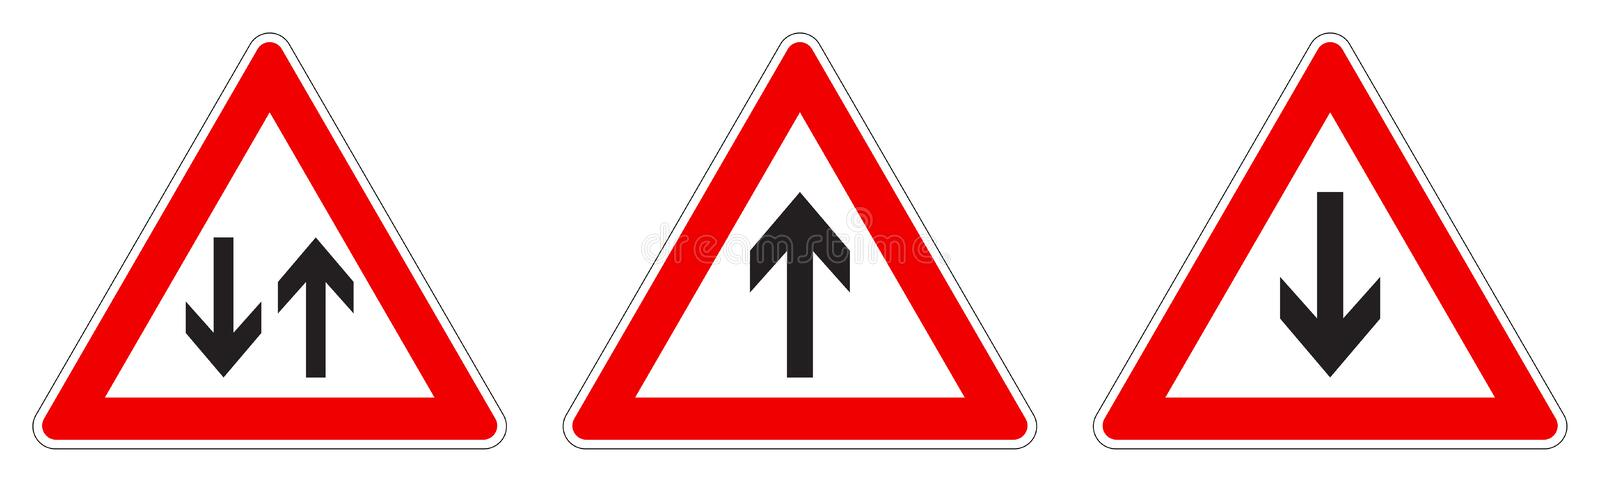 Warning - single/two way traffic sign. Black arrow in red triangle, version with arrow pointing up, down and both ways royalty free illustration